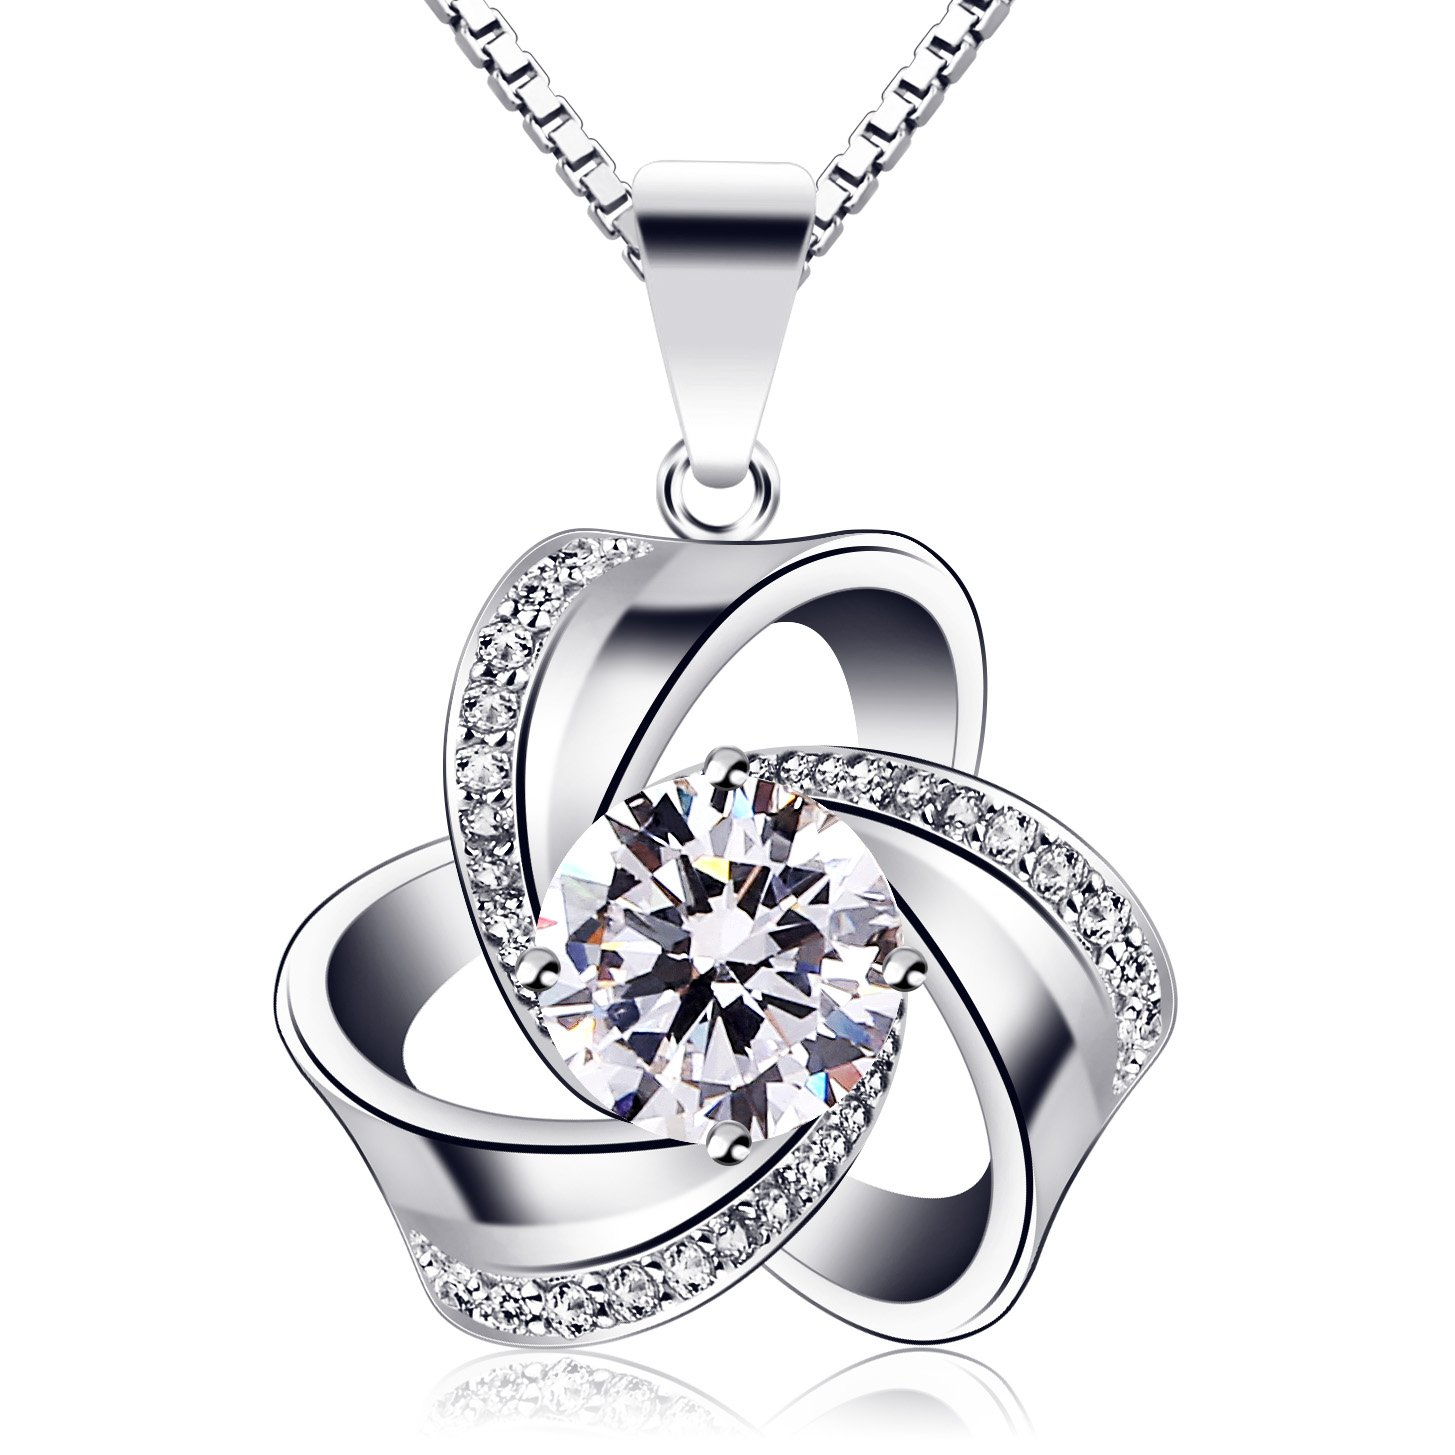 dbd5ec0b0 Amazon.com: B.Catcher Silver Necklace for Women Clover Pendant Necklace 925  Sterling Silver Cubic Zirconia with 45cm Chain: Jewelry